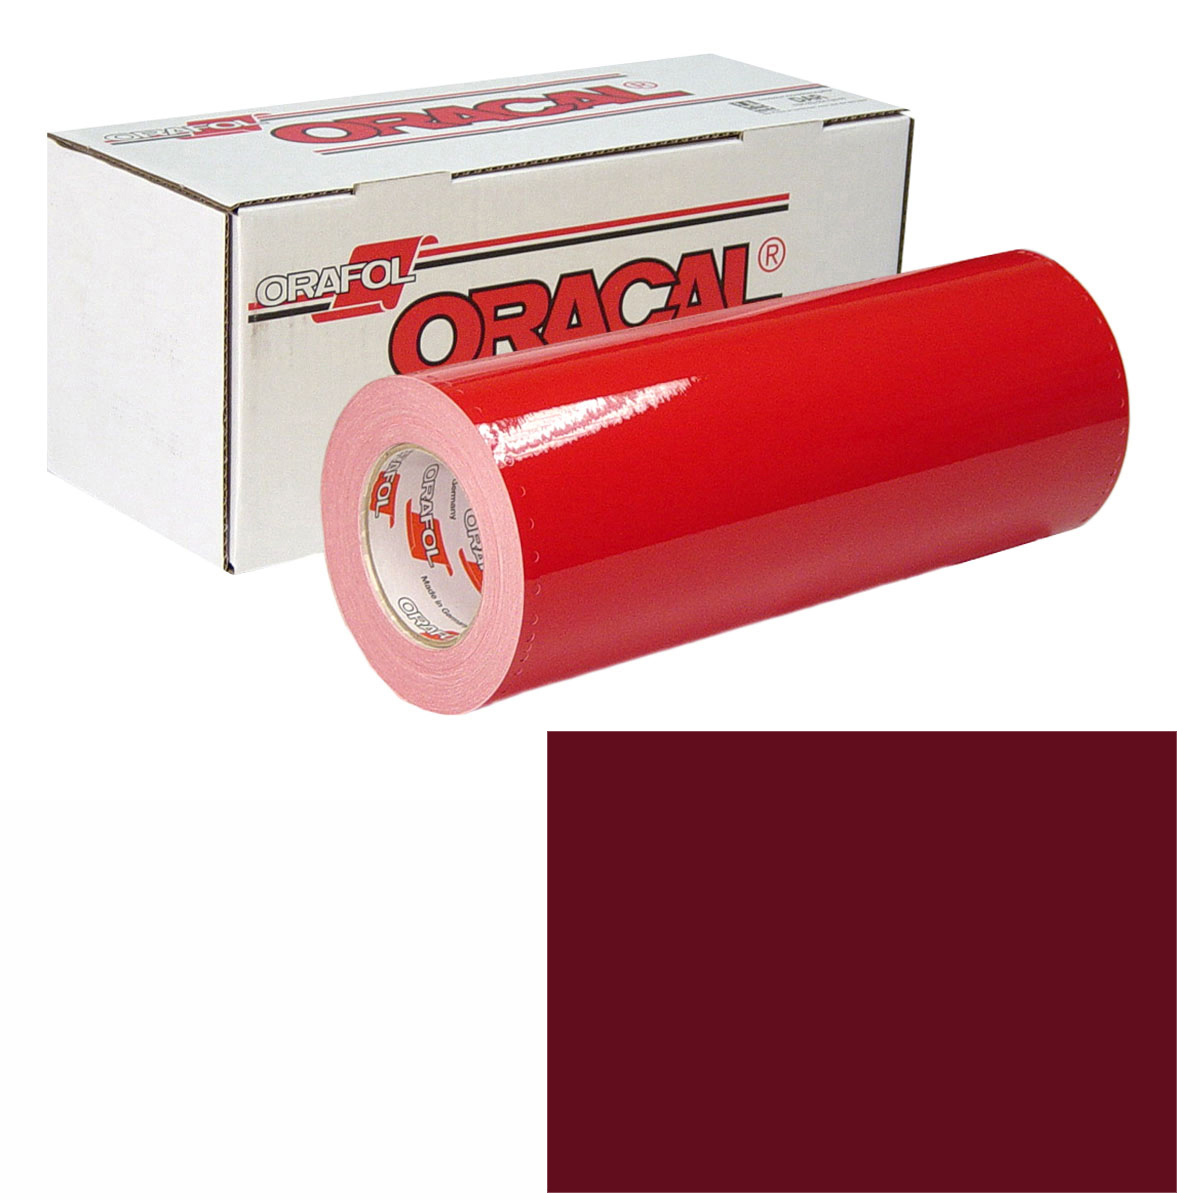 ORACAL 951 15in X 10yd 026 Purple Red